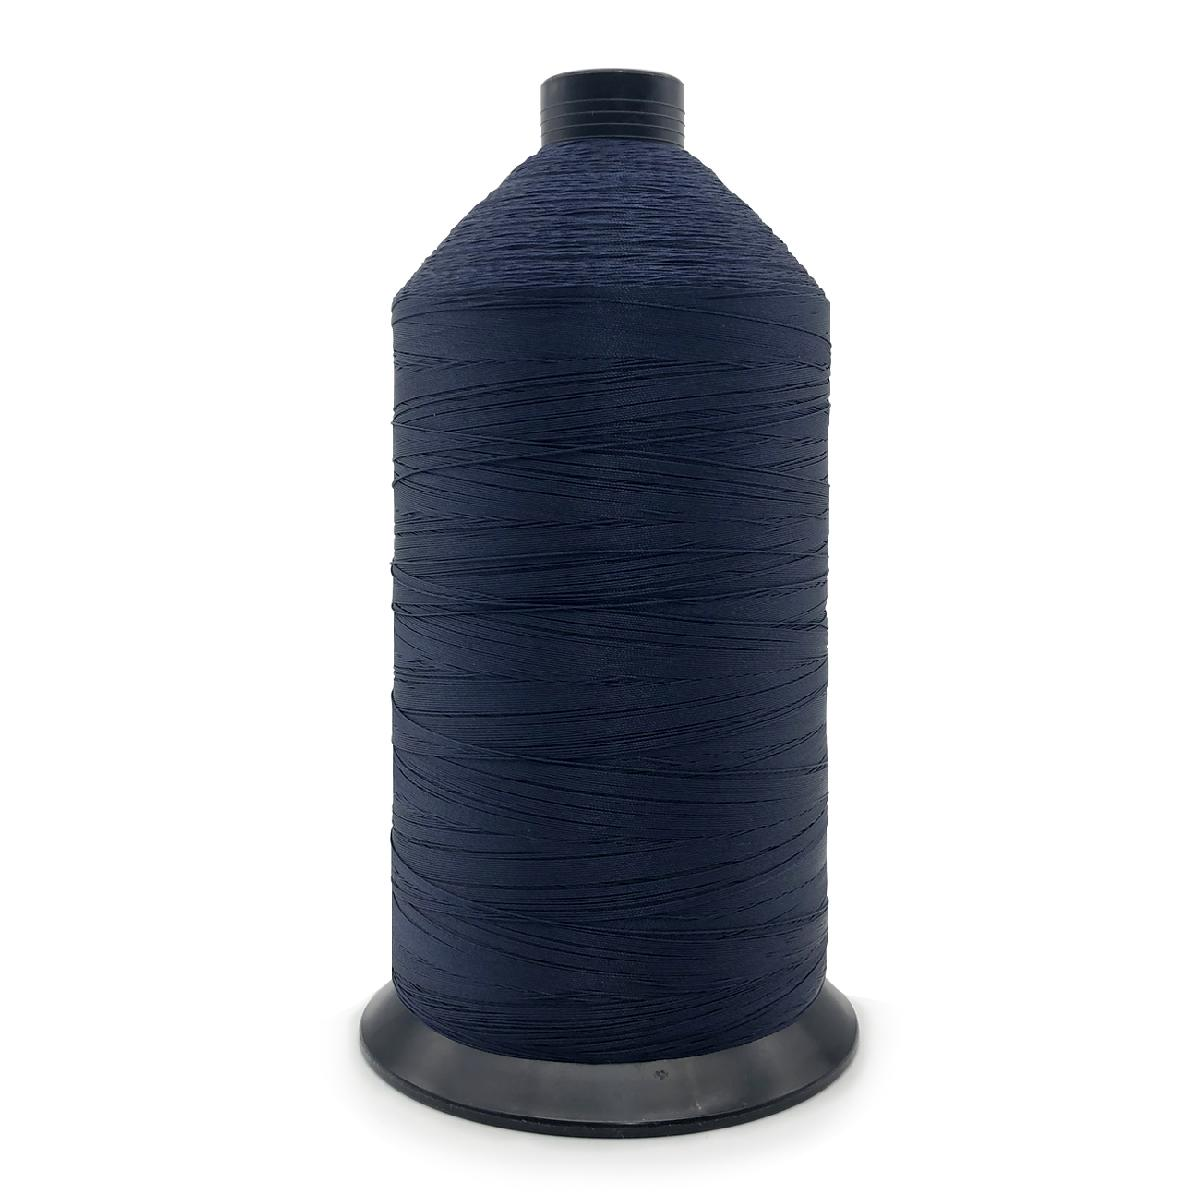 Anefil Nylon Thread Tex 90 Navy